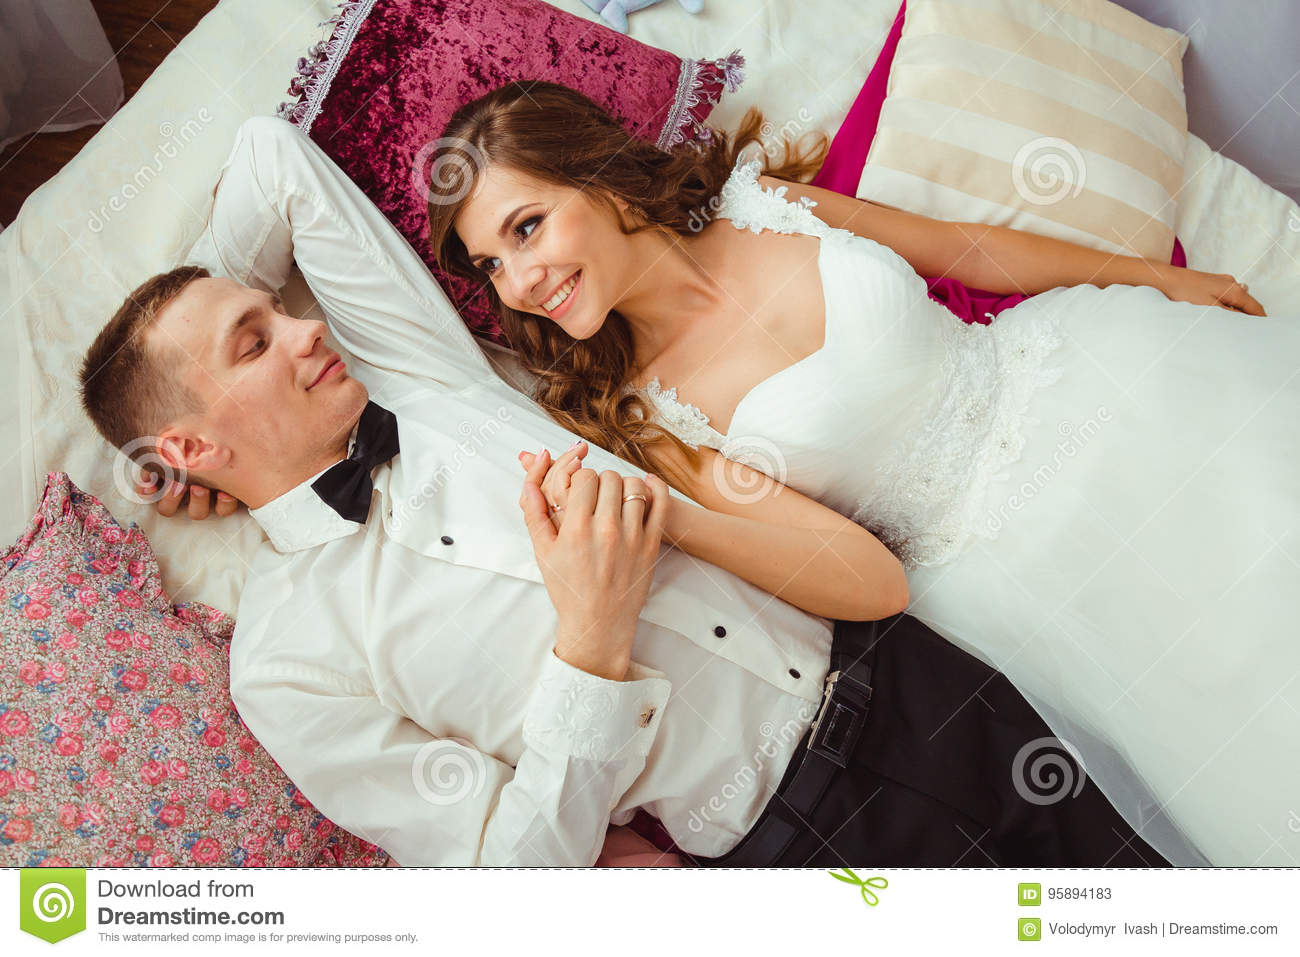 Bride looks at her handsome groom while lying on the bed